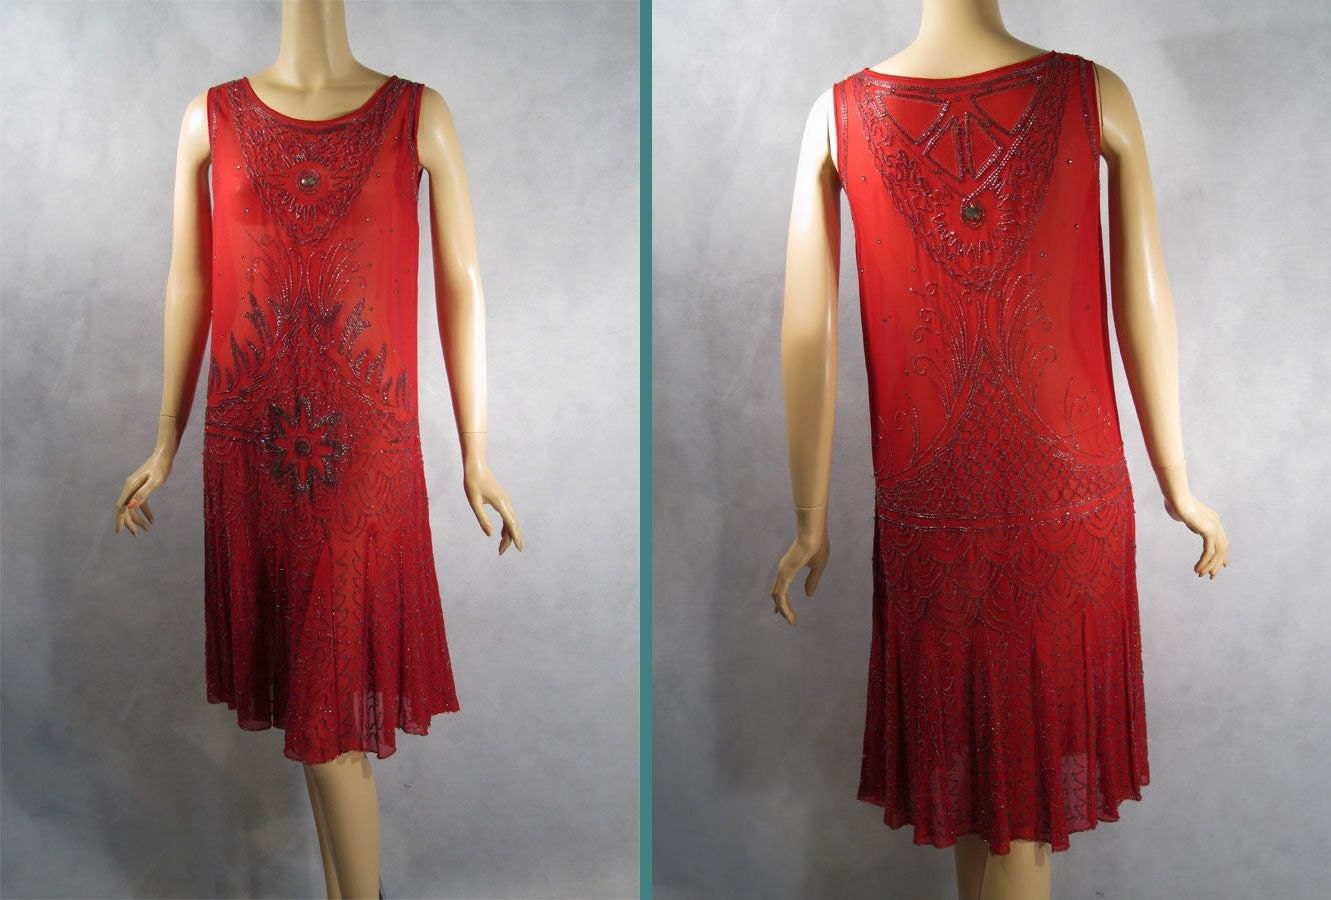 Vintage 1920s red lace flapper dress